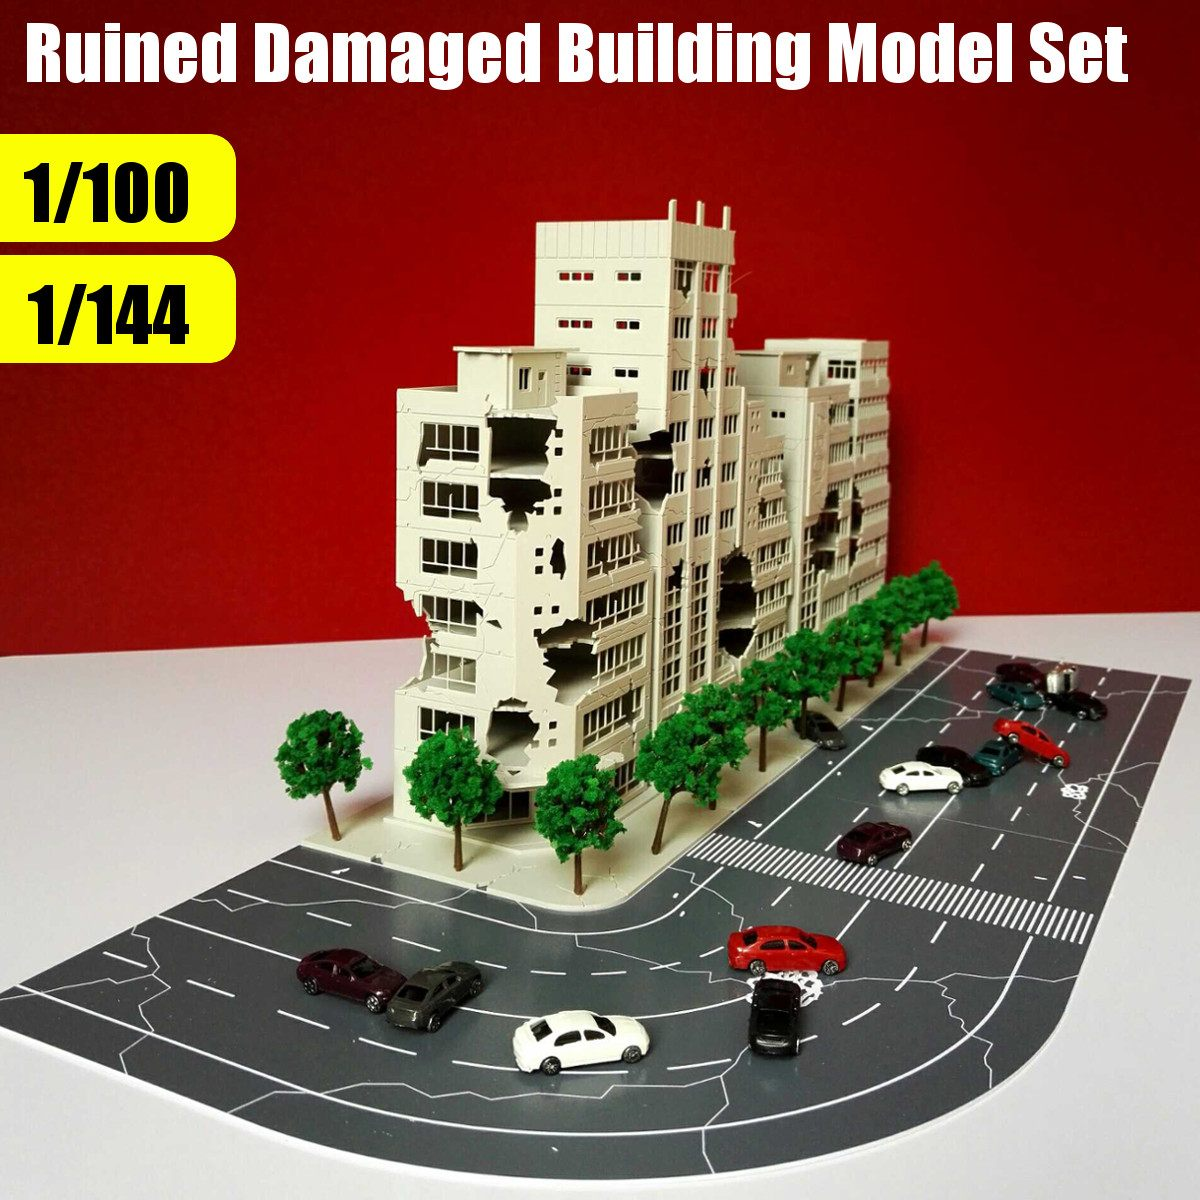 1:144 3D Altman Scene Model Battle Damaged Building Outland Model Railway Office Scene Ruined Building Abandoned For Child Gift